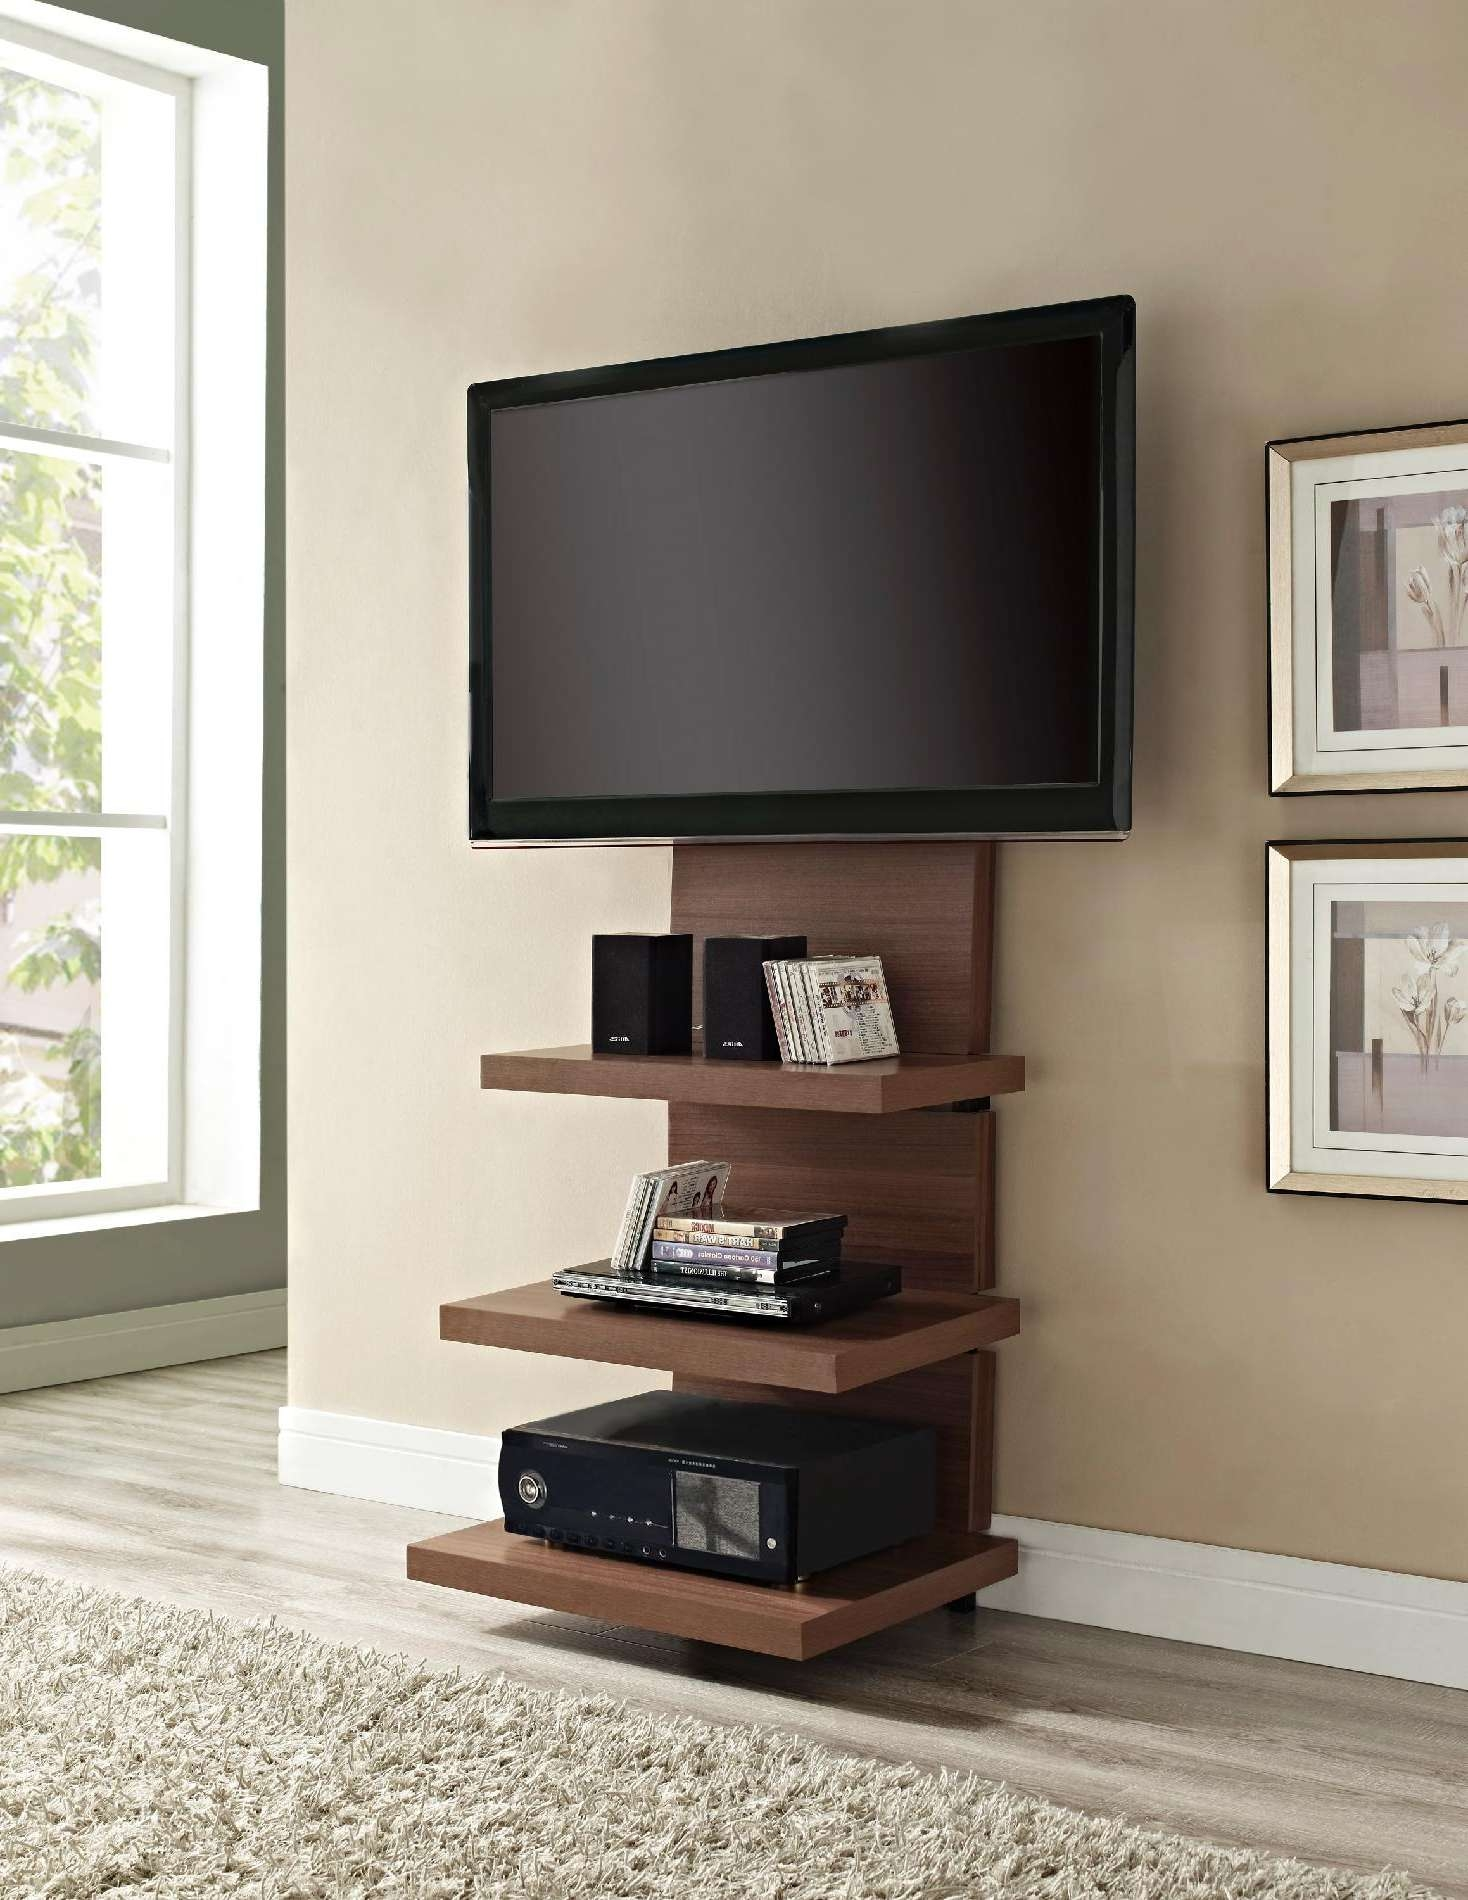 Tall Tv Stand For Bedroom Also Stands New Thin Ideas Images With Regard To Walnut Tv Stands For Flat Screens (View 13 of 20)